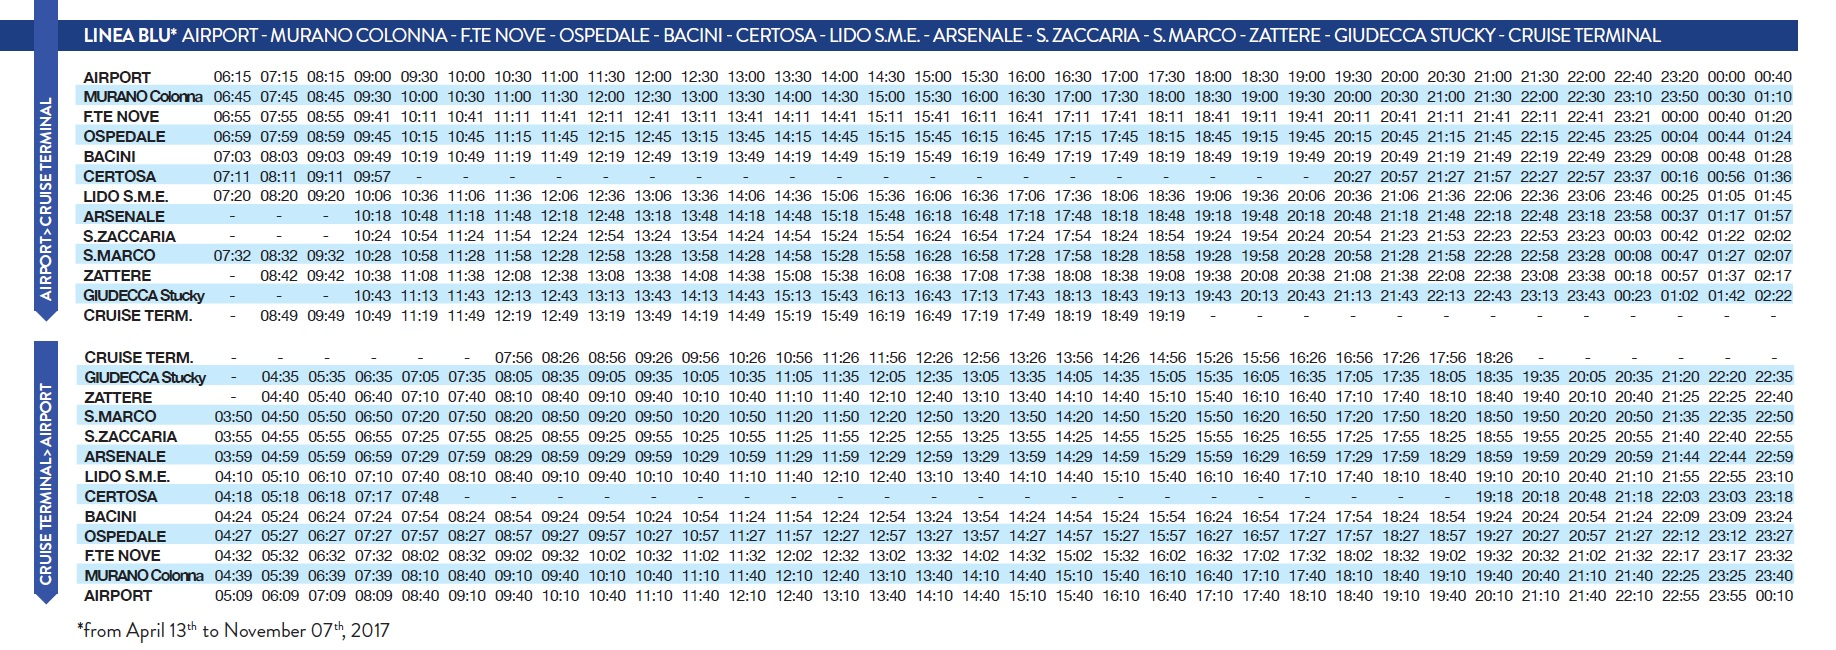 Linea Blu summer 2017 timetable